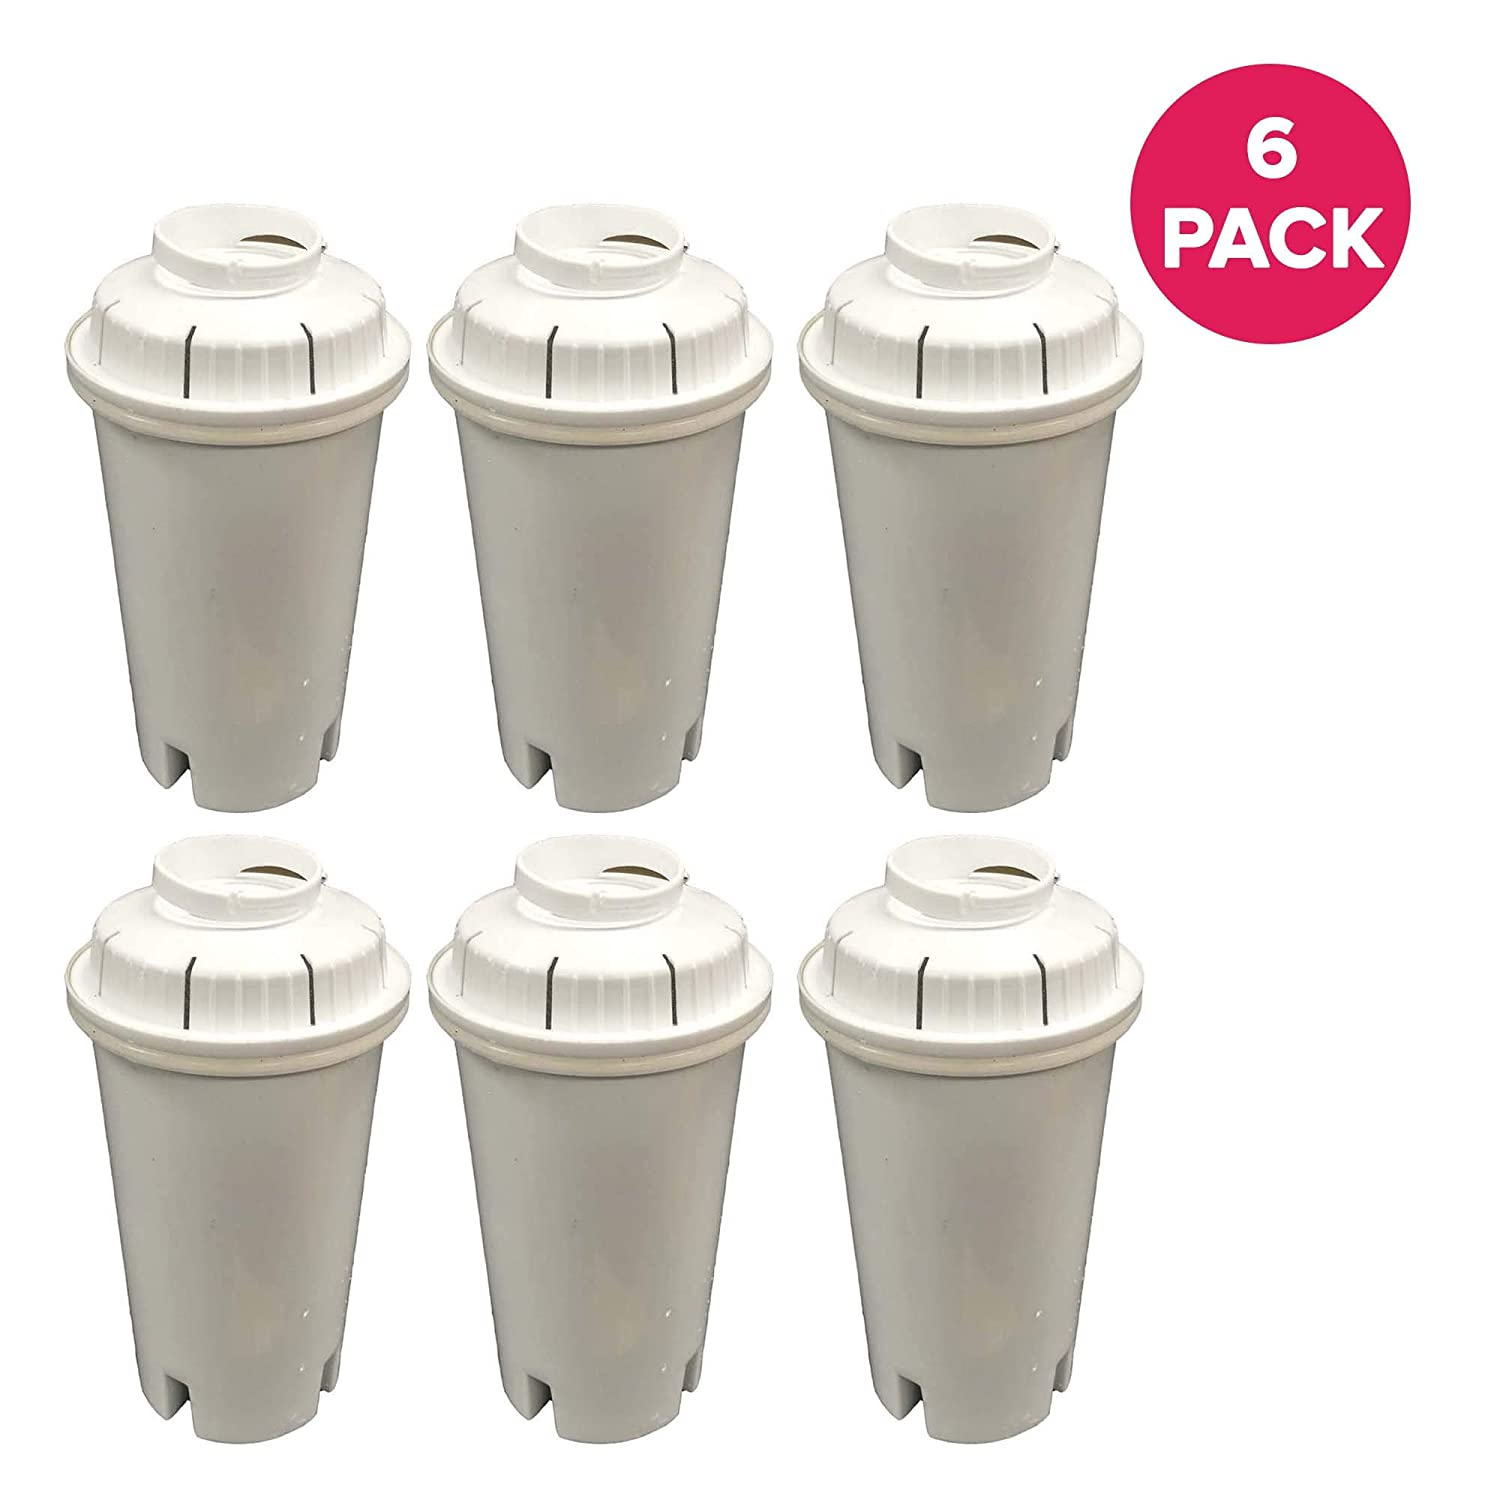 Fits Pitchers /& Dispensers Think Crucial 6 Replacements for Brita Water Filter